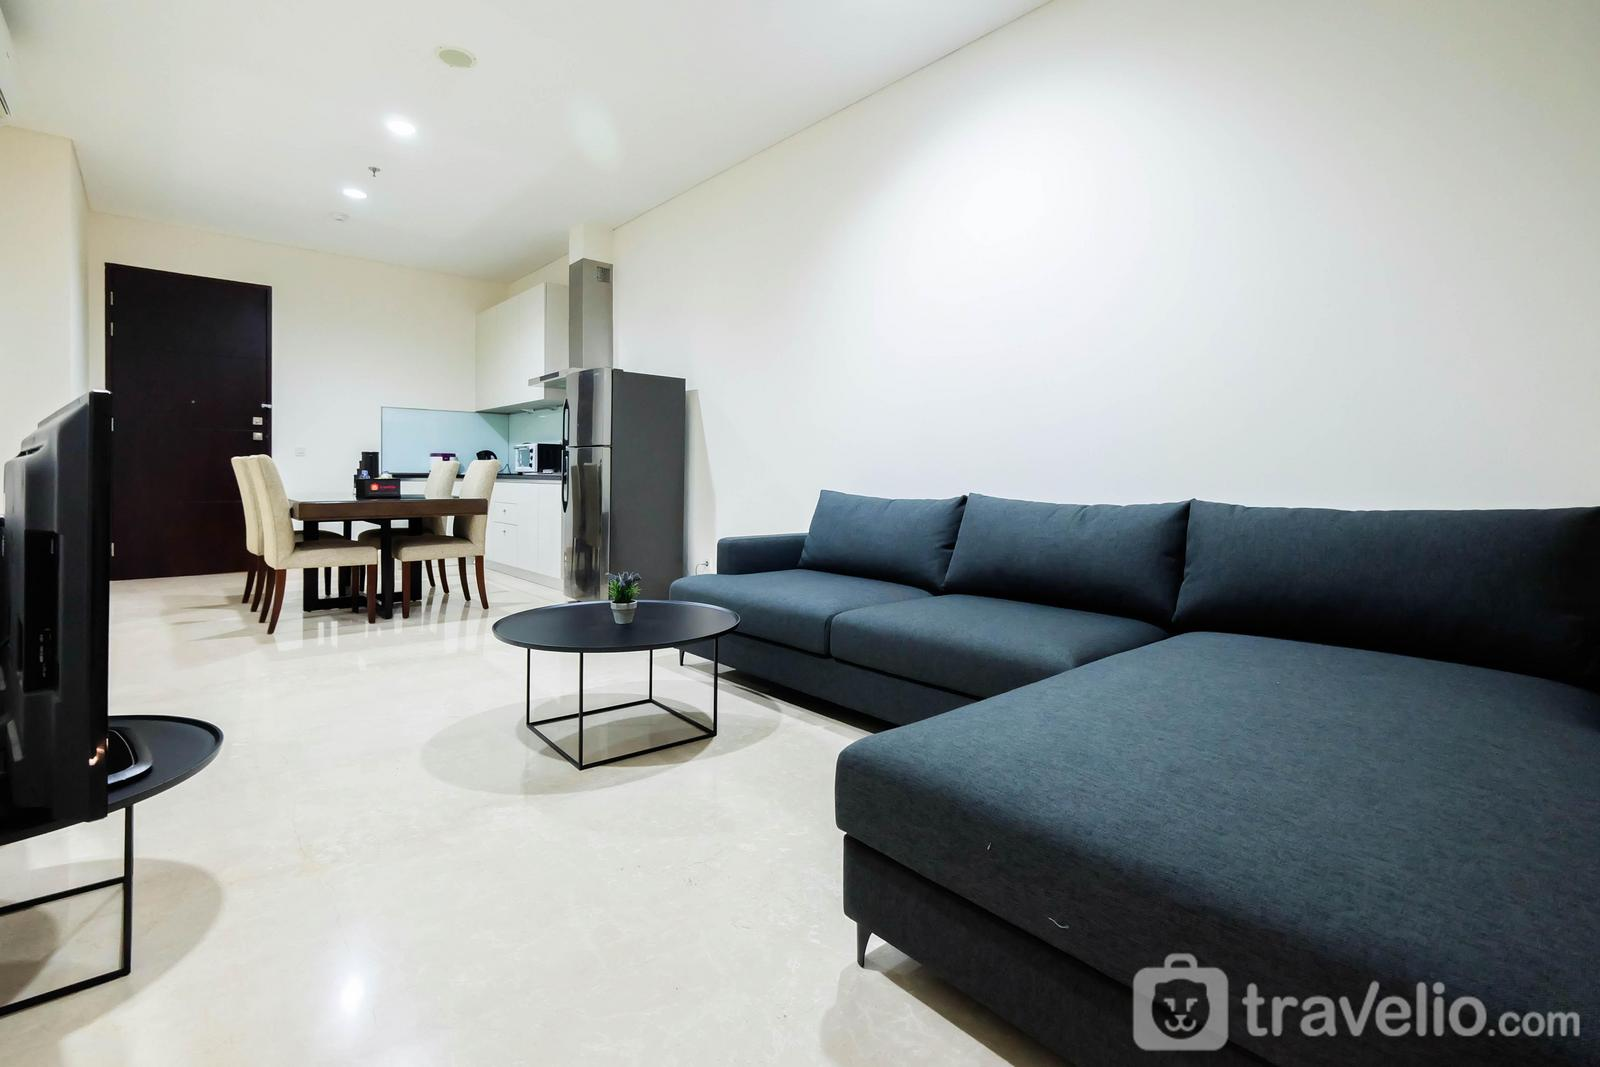 Four Winds - Luxurious 2BR Four Winds Apartment near Senayan By Travelio